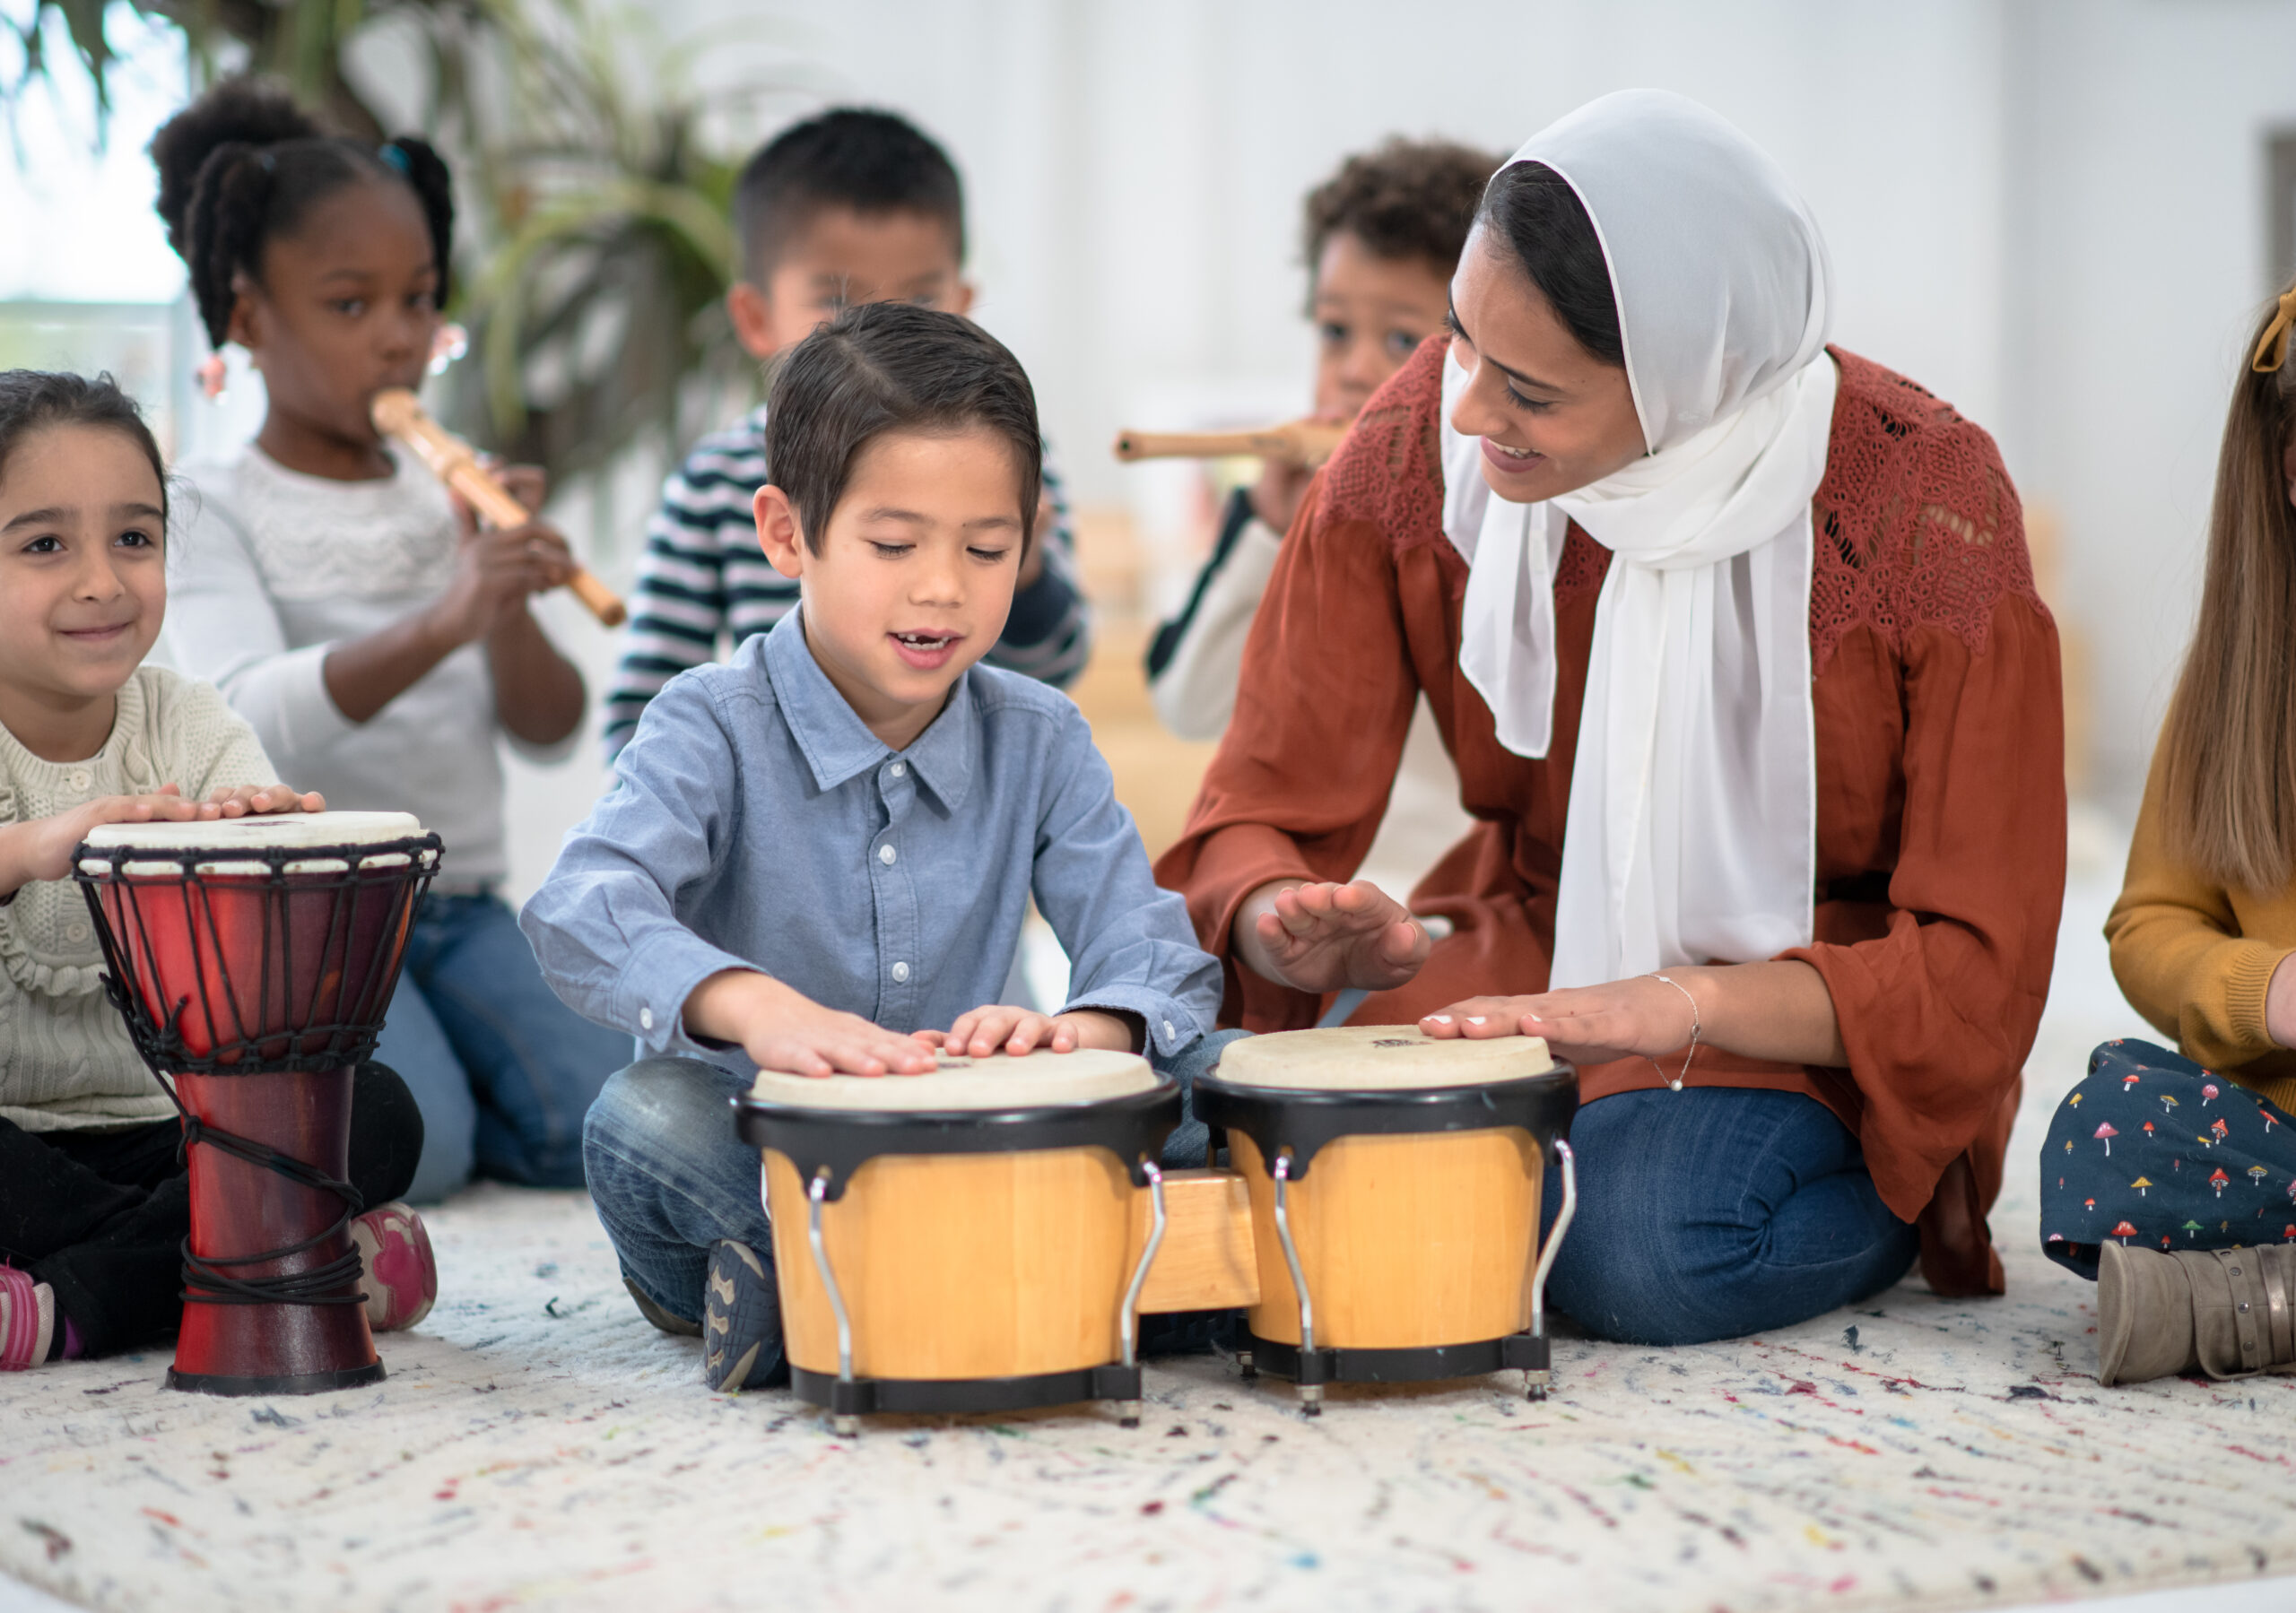 An adorable little Asian boy plays the bongo drums in his classroom while his teacher sits next to him.